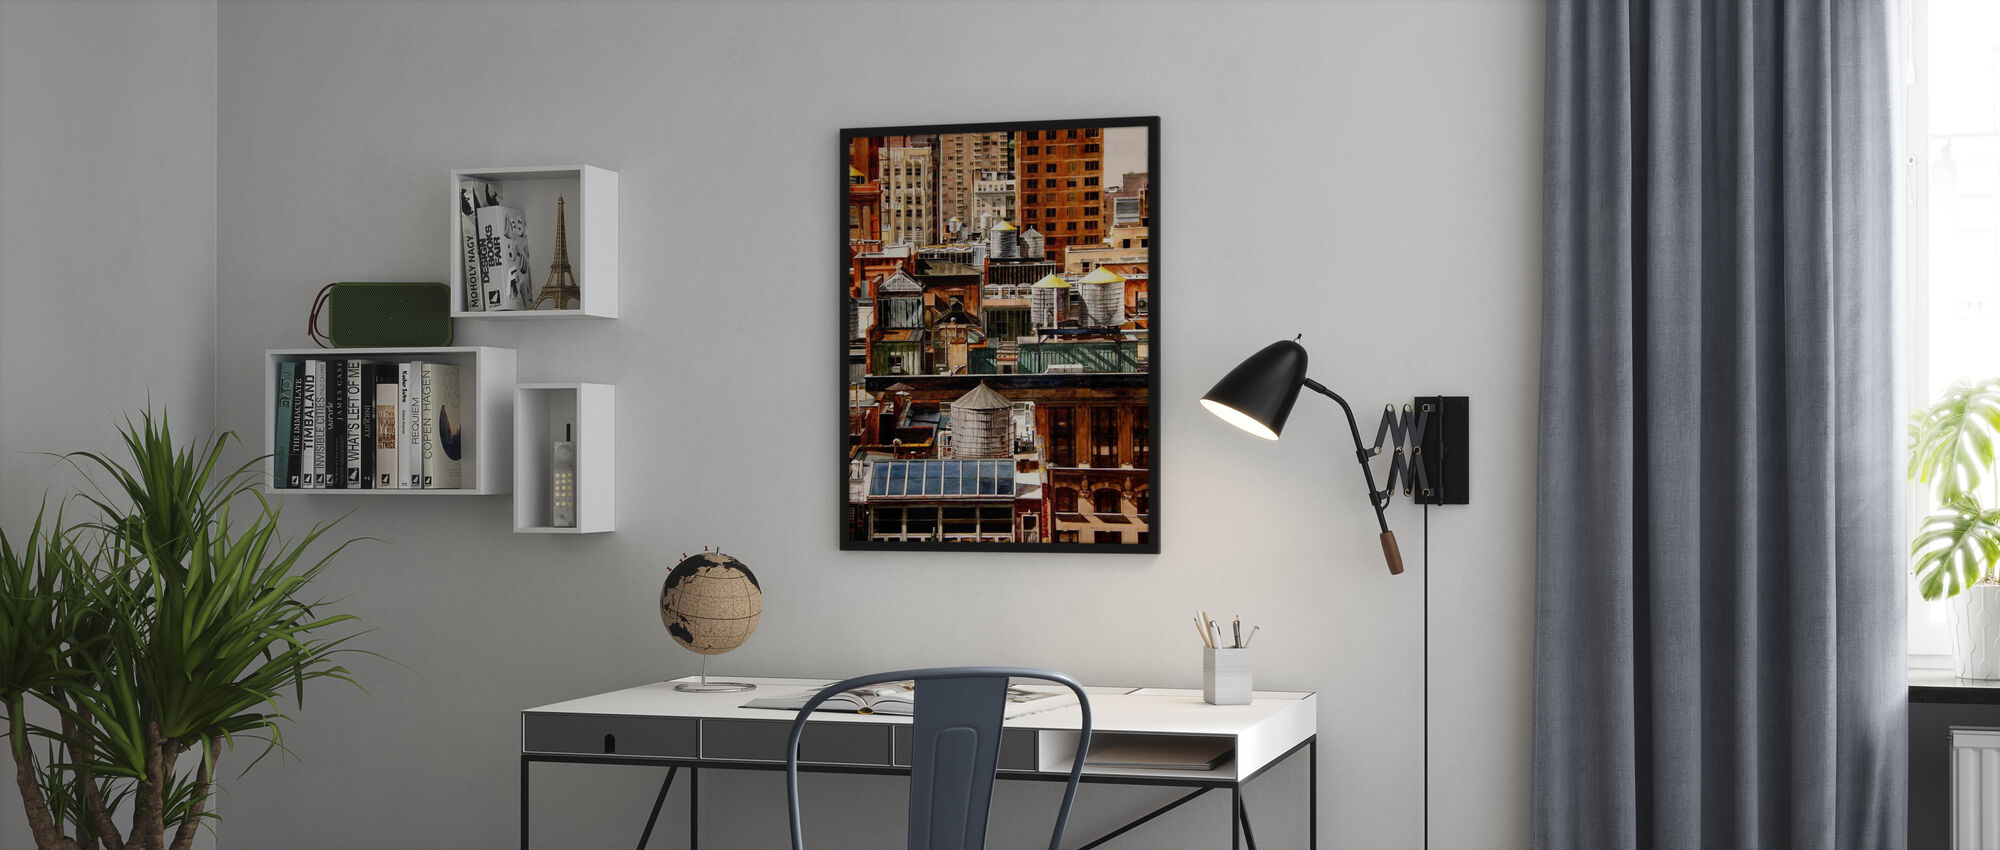 New York Rooftops - Poster - Office